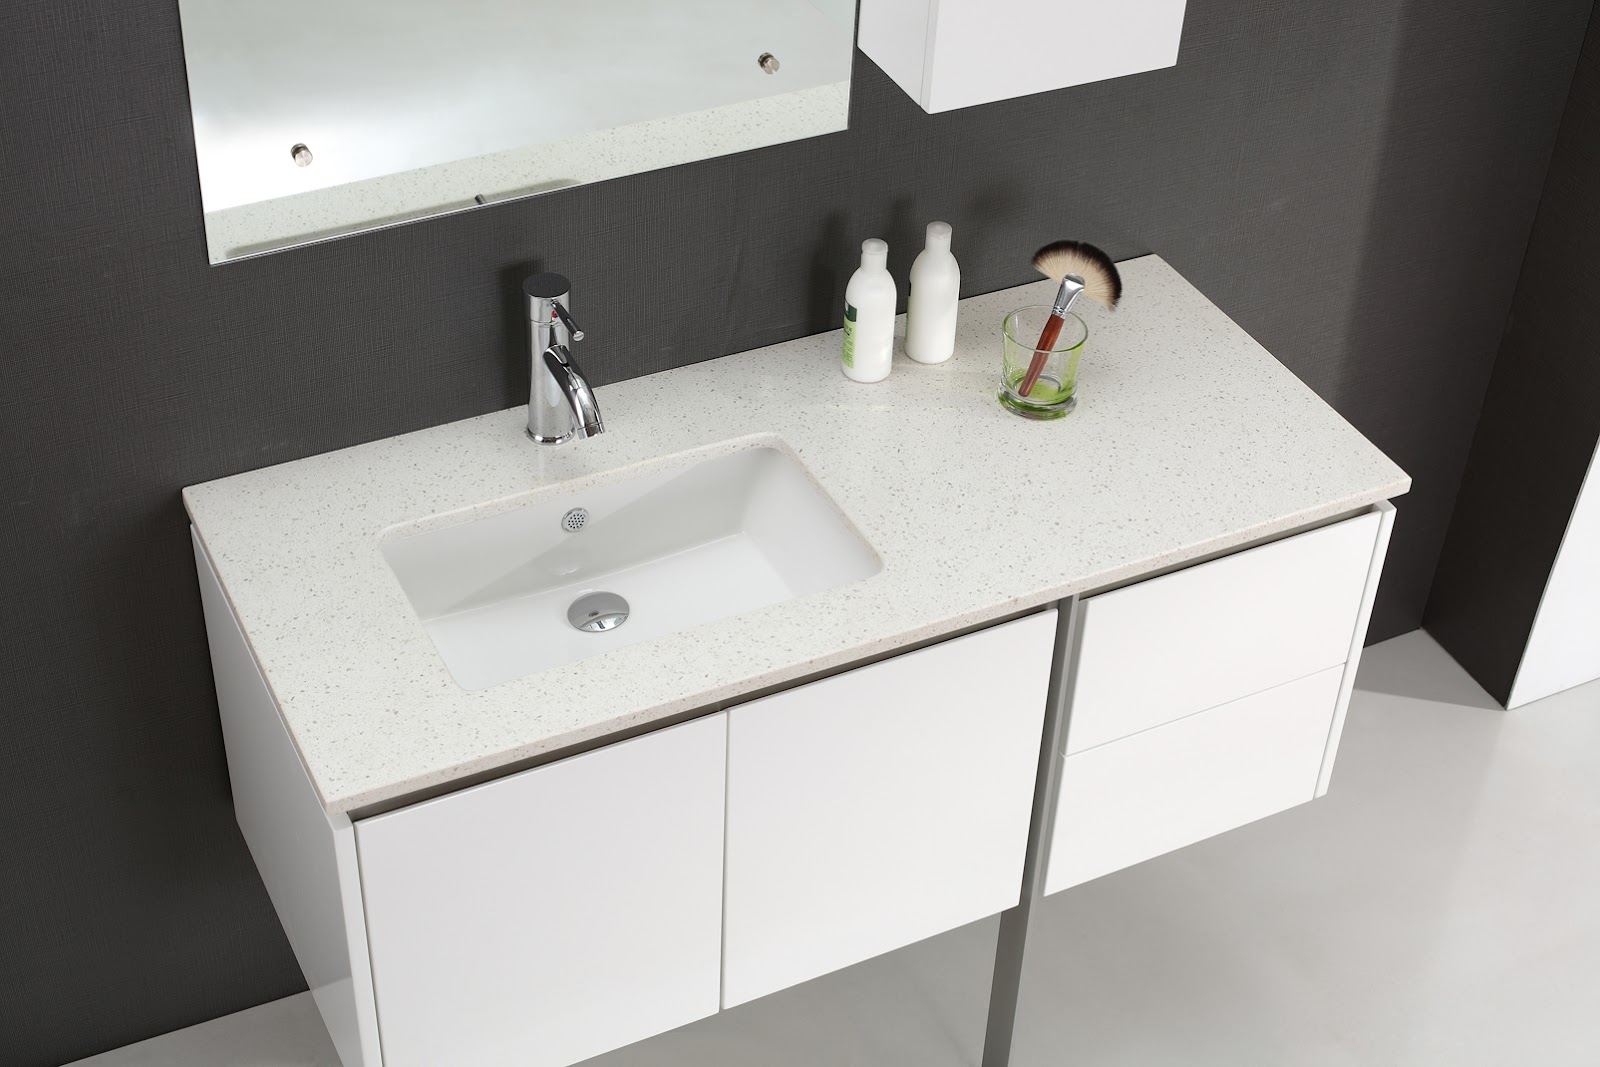 Modern Vanity Tops : Merida mm luxury white vanity for modern bathrooms